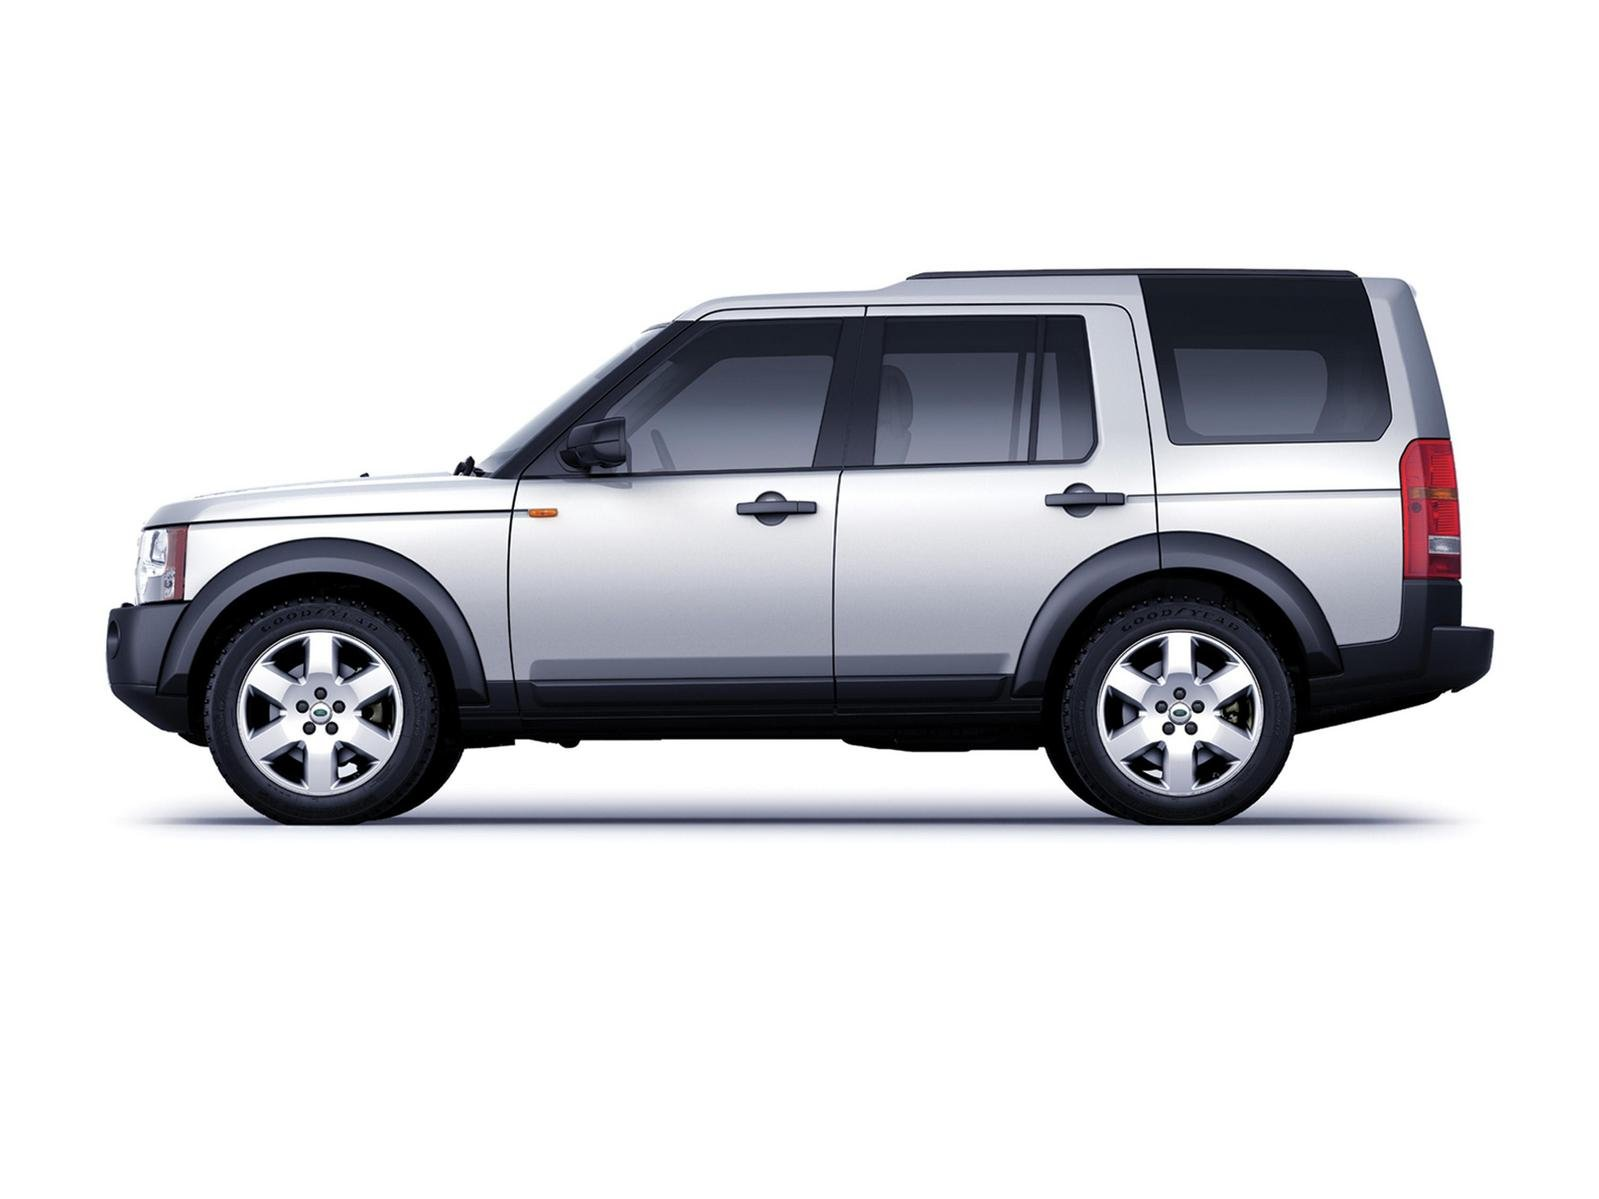 2007 land rover discovery picture 146440 car review top speed. Black Bedroom Furniture Sets. Home Design Ideas